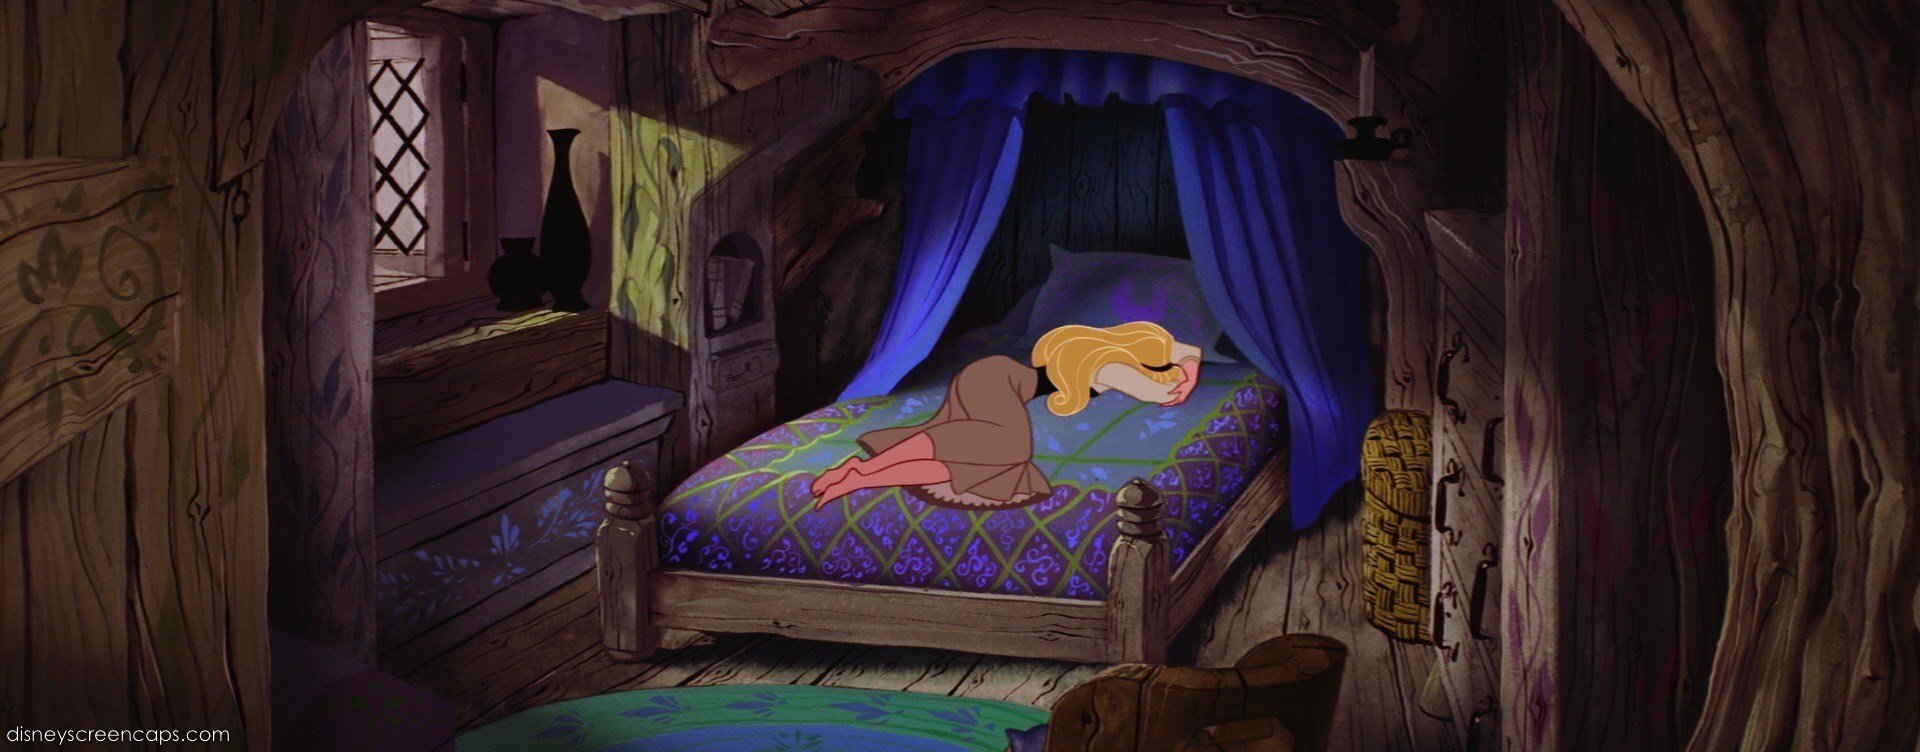 Best Week 16 Sleeping Beauty A Year In Disney Movies With Pictures